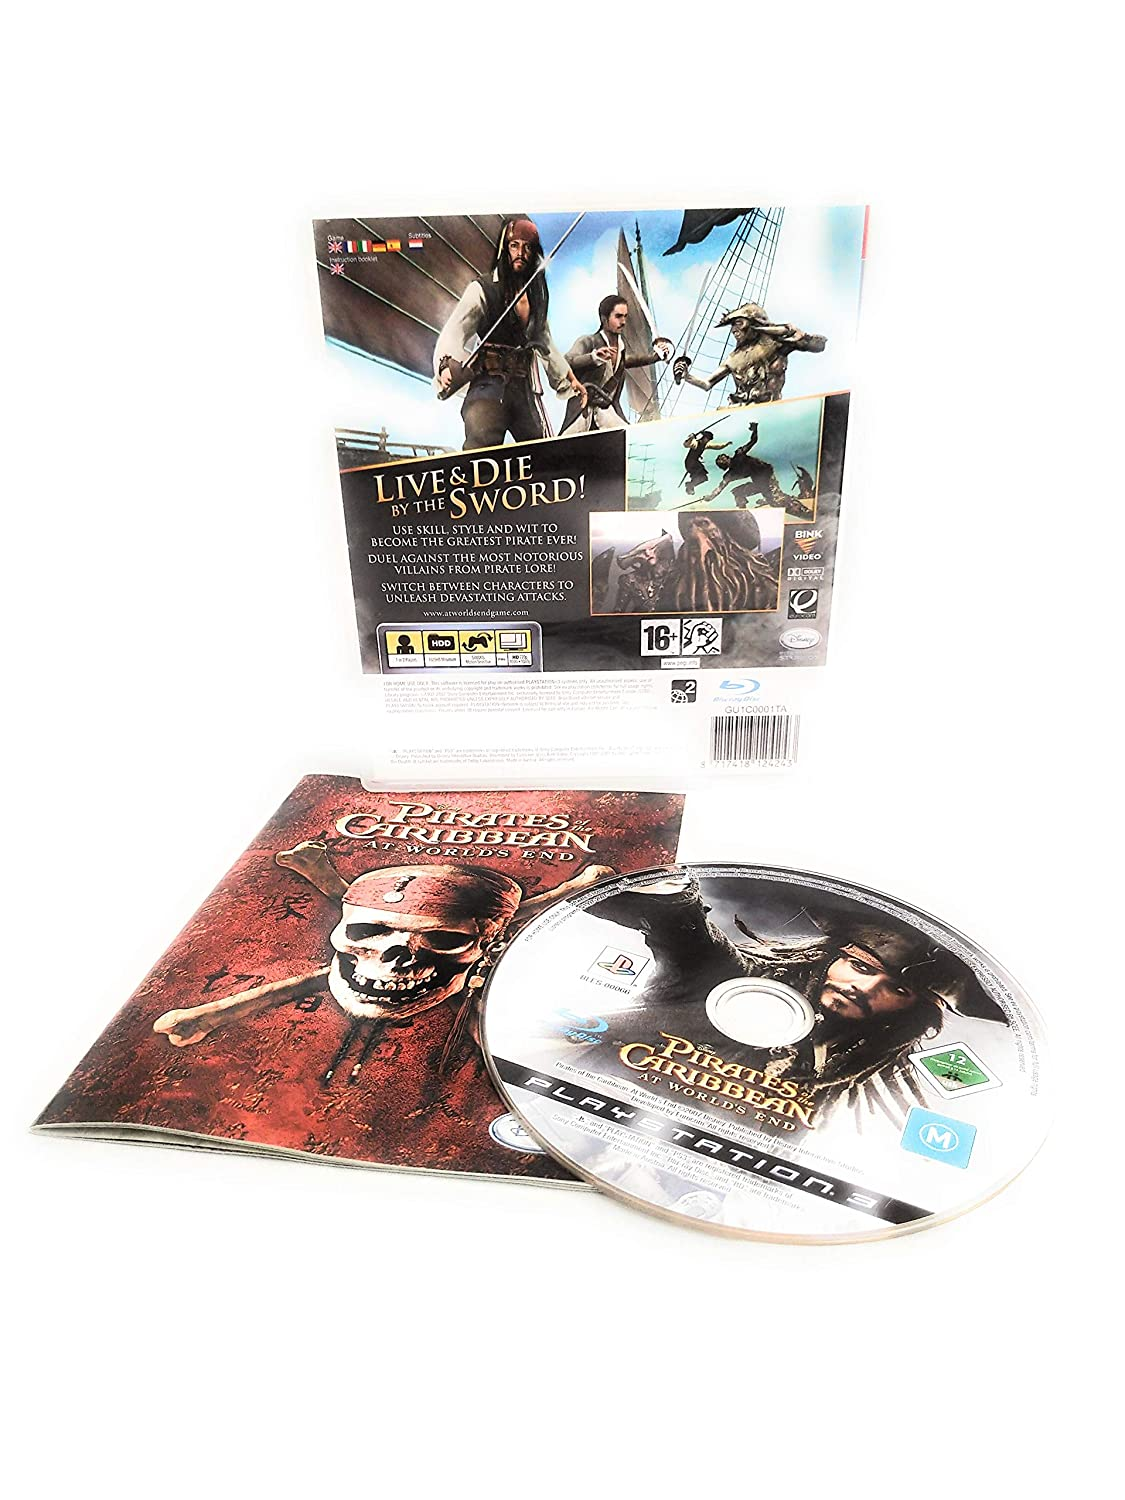 Amazon.com: Gra PS3/Piratas del Caribe: atworldsend: Video Games